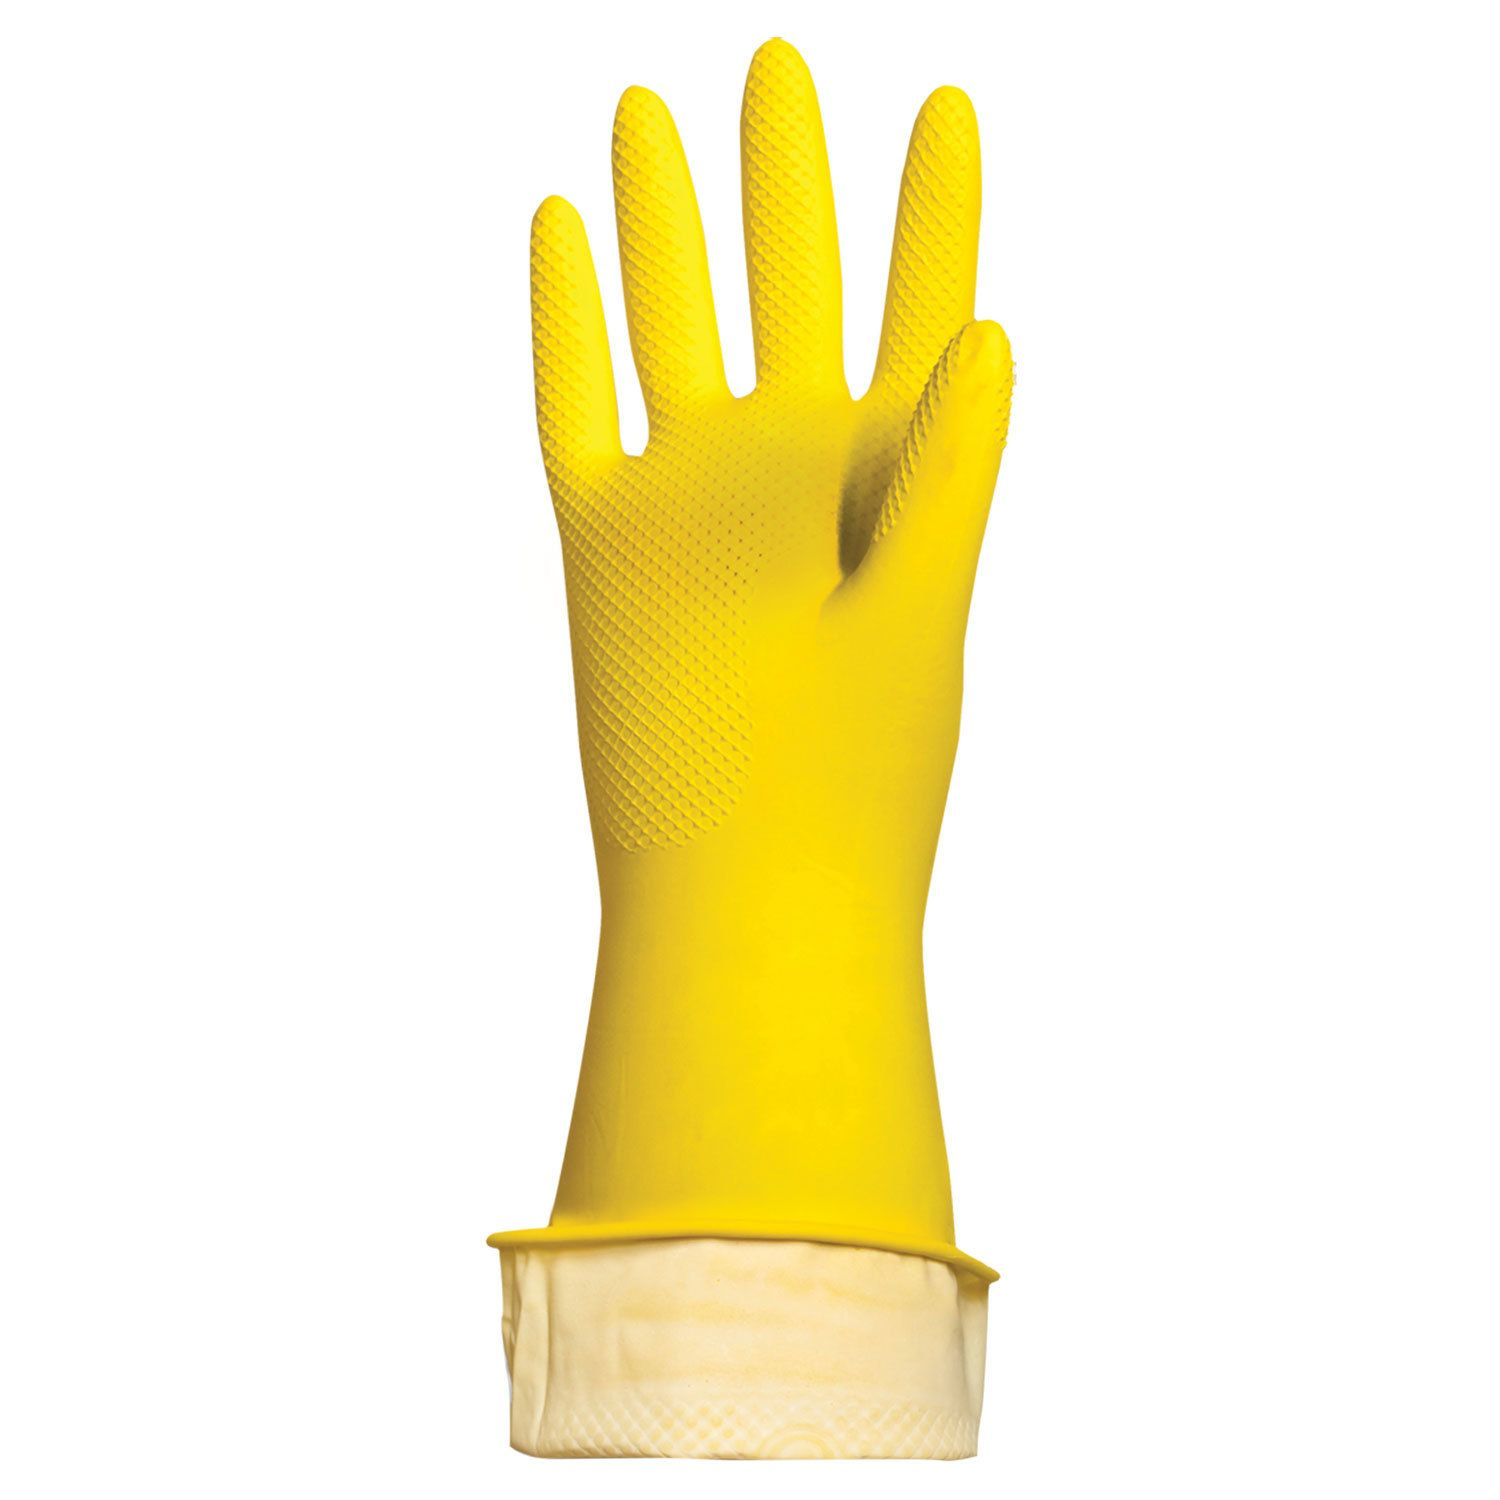 LYUBASHA / Latex household gloves ECONOMY, REUSABLE, cotton dusting, size M (medium)